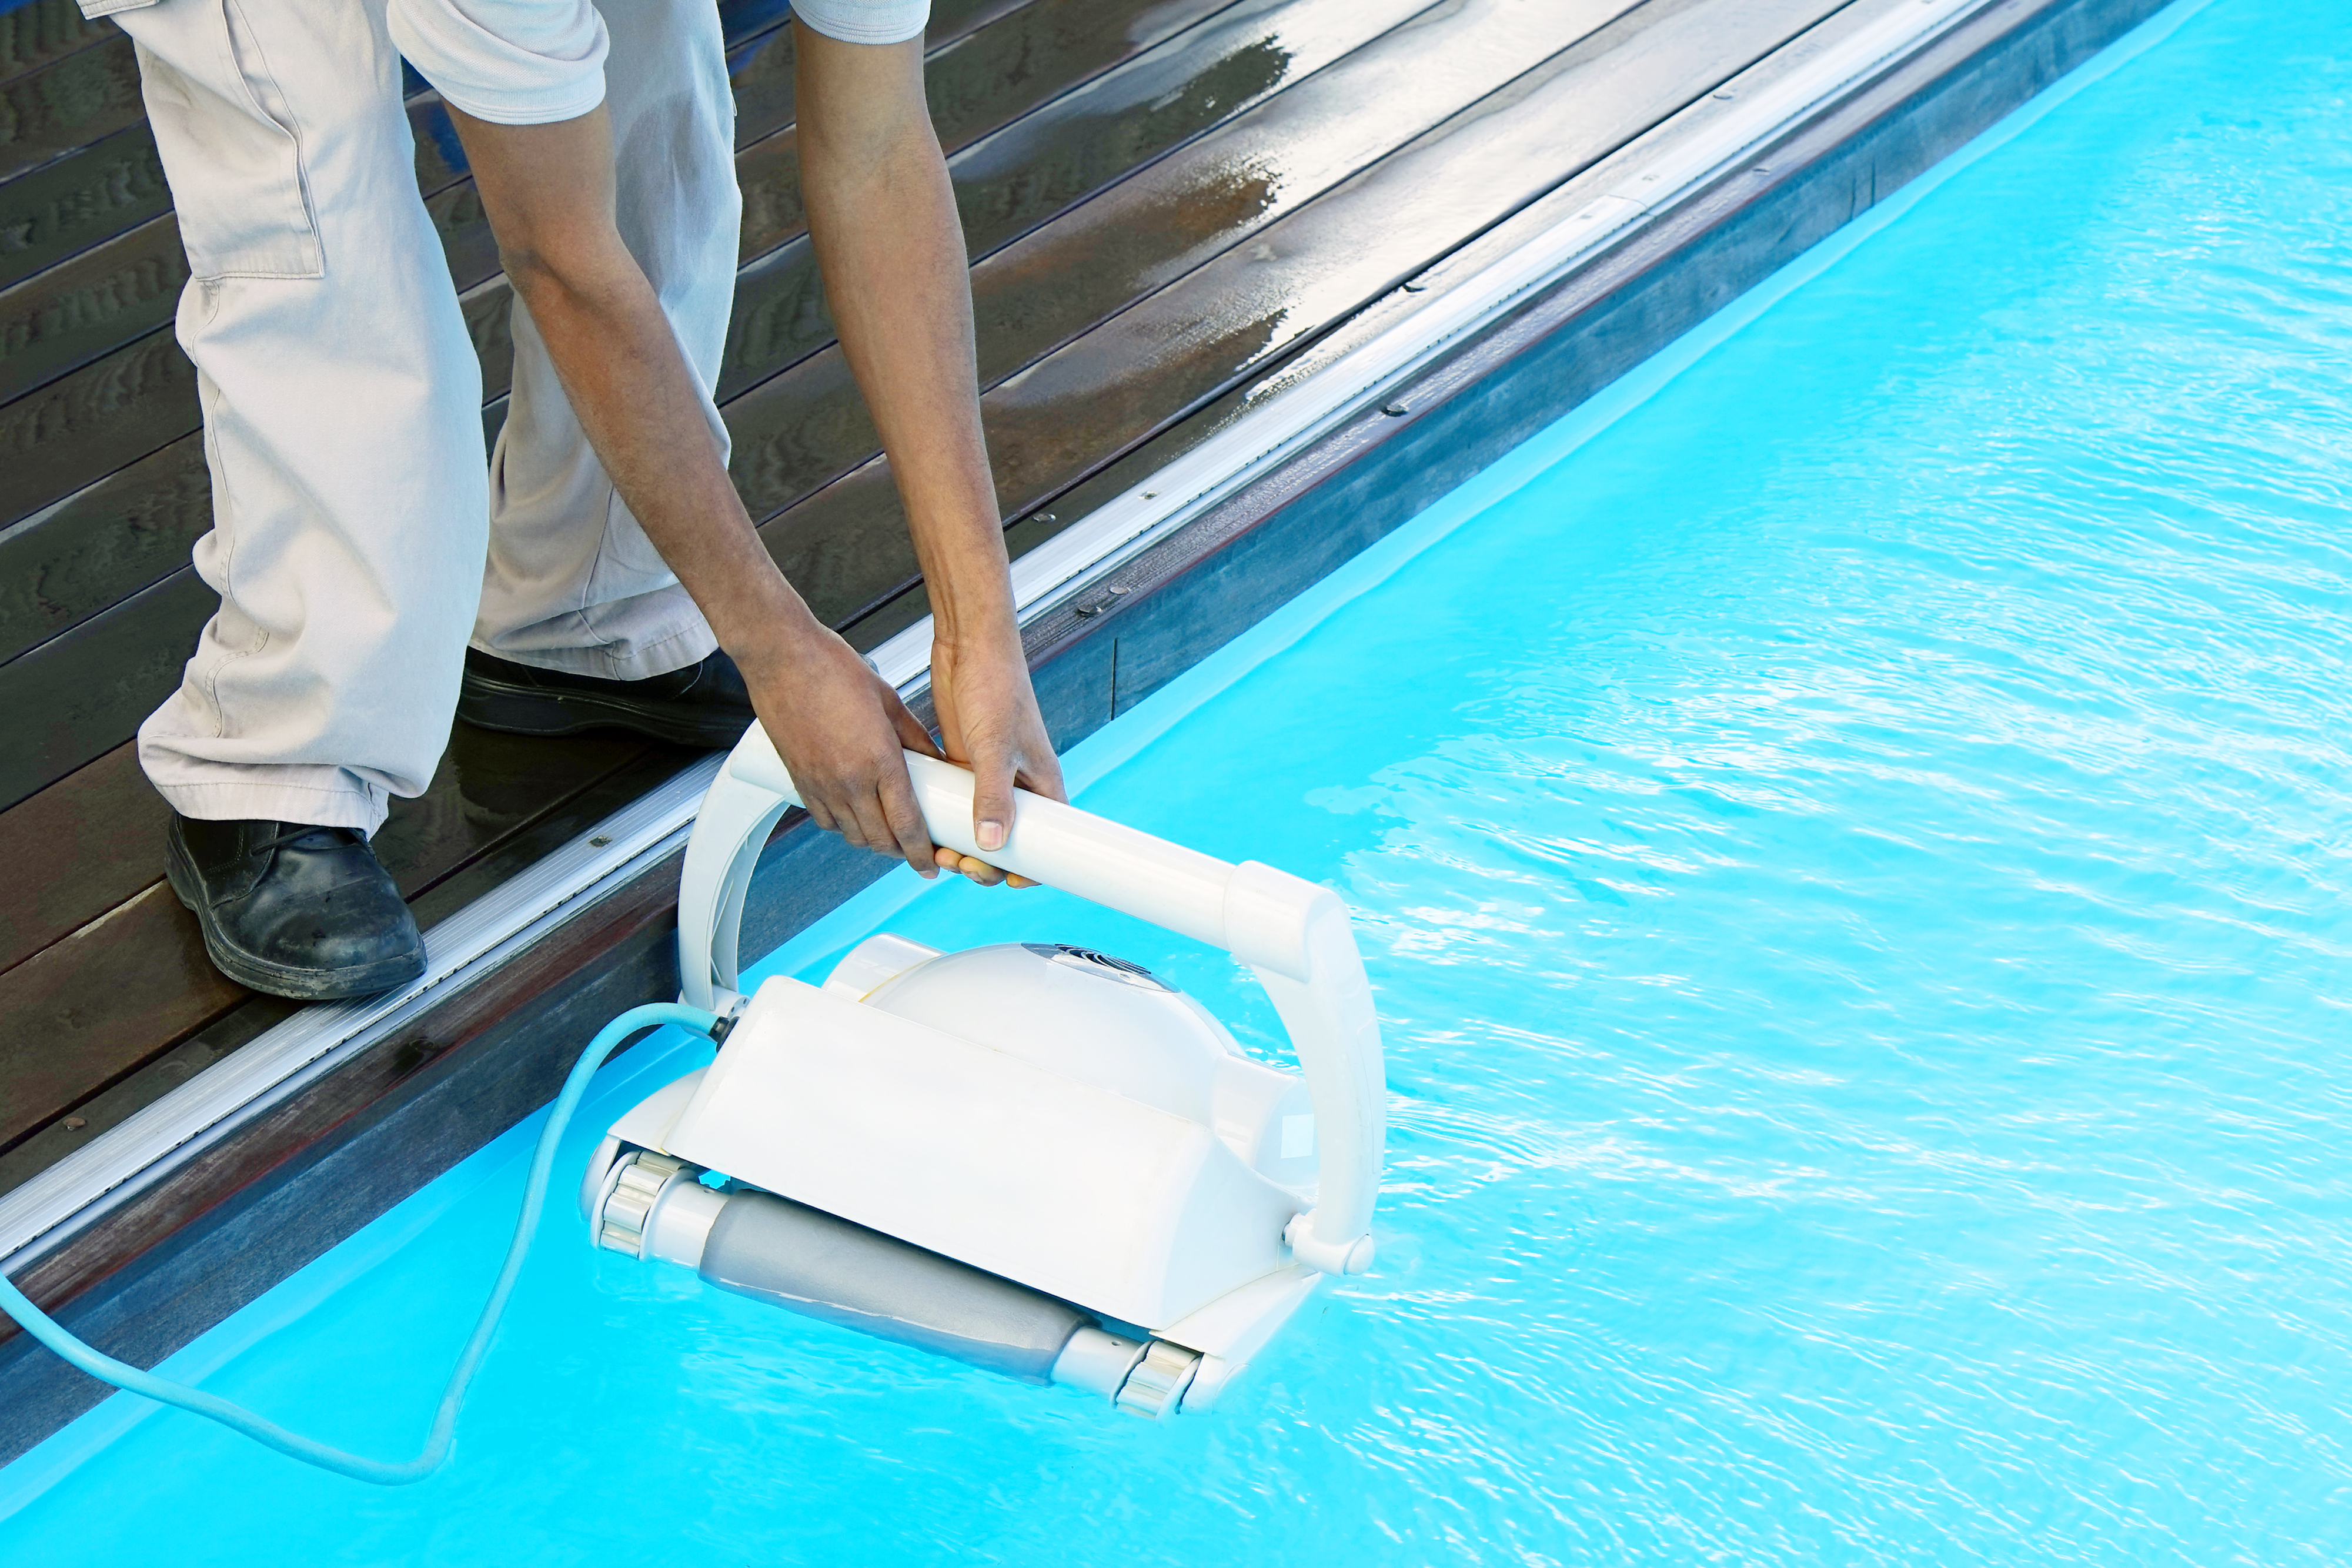 How to Unclog a Pool Skimmer | Home Guides | SF Gate